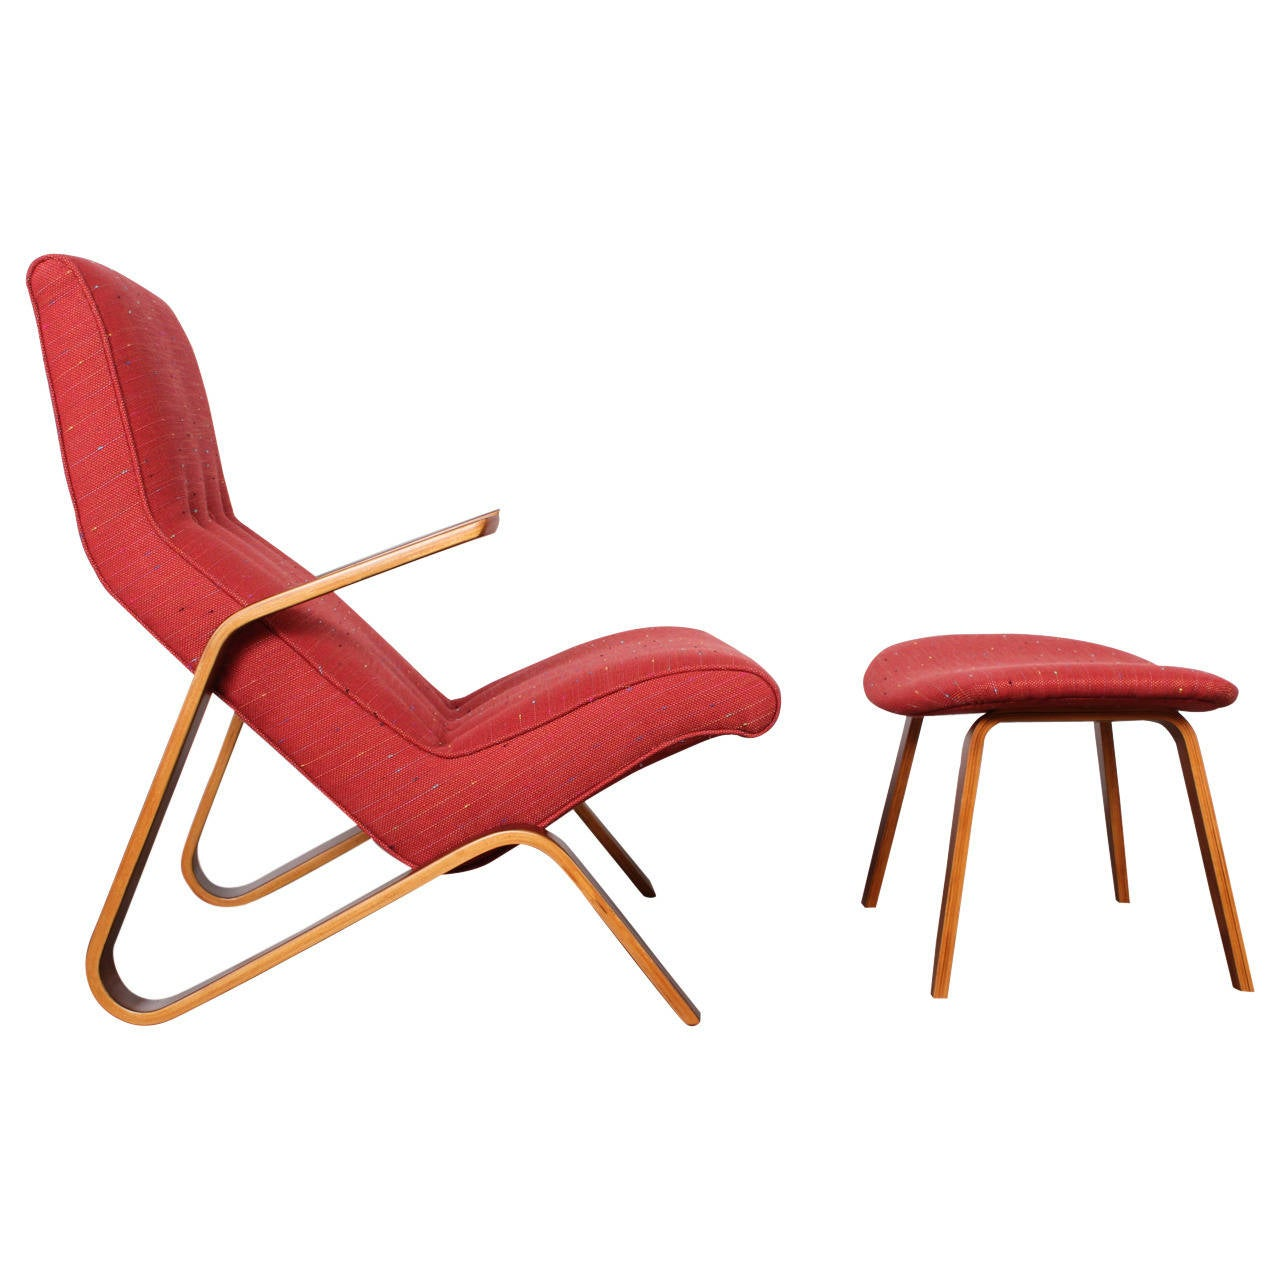 Grasshopper Chair and Ottoman by Eero Saarinen for Knoll